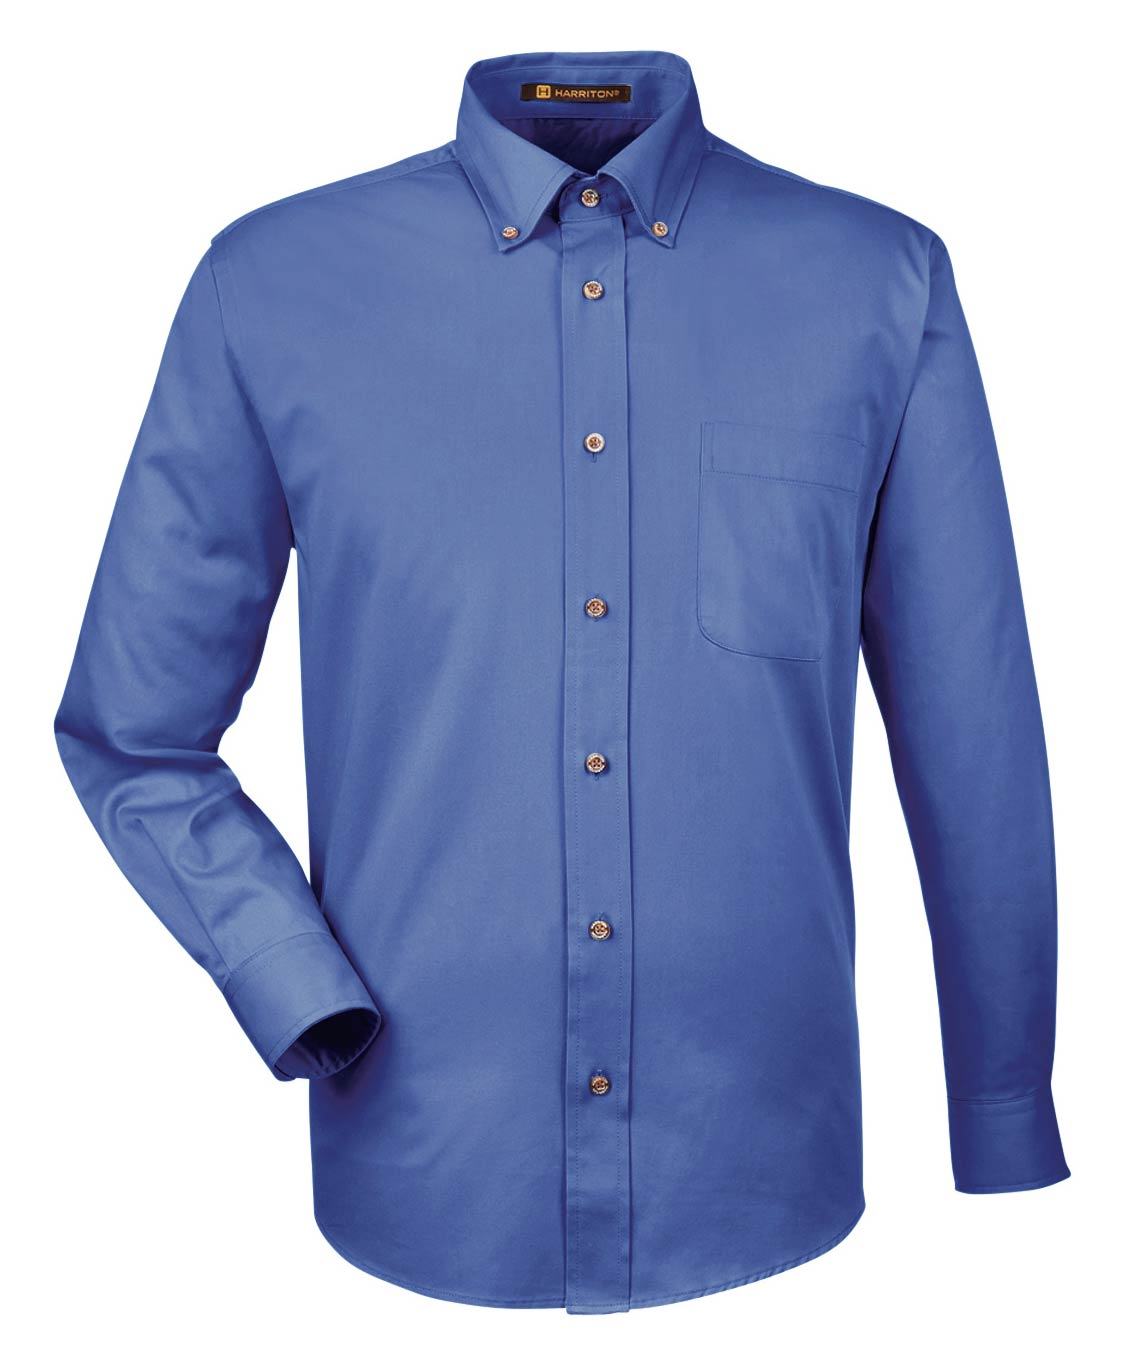 Harriton Mens Long-Sleeve Twill Shirt with Stain-Release